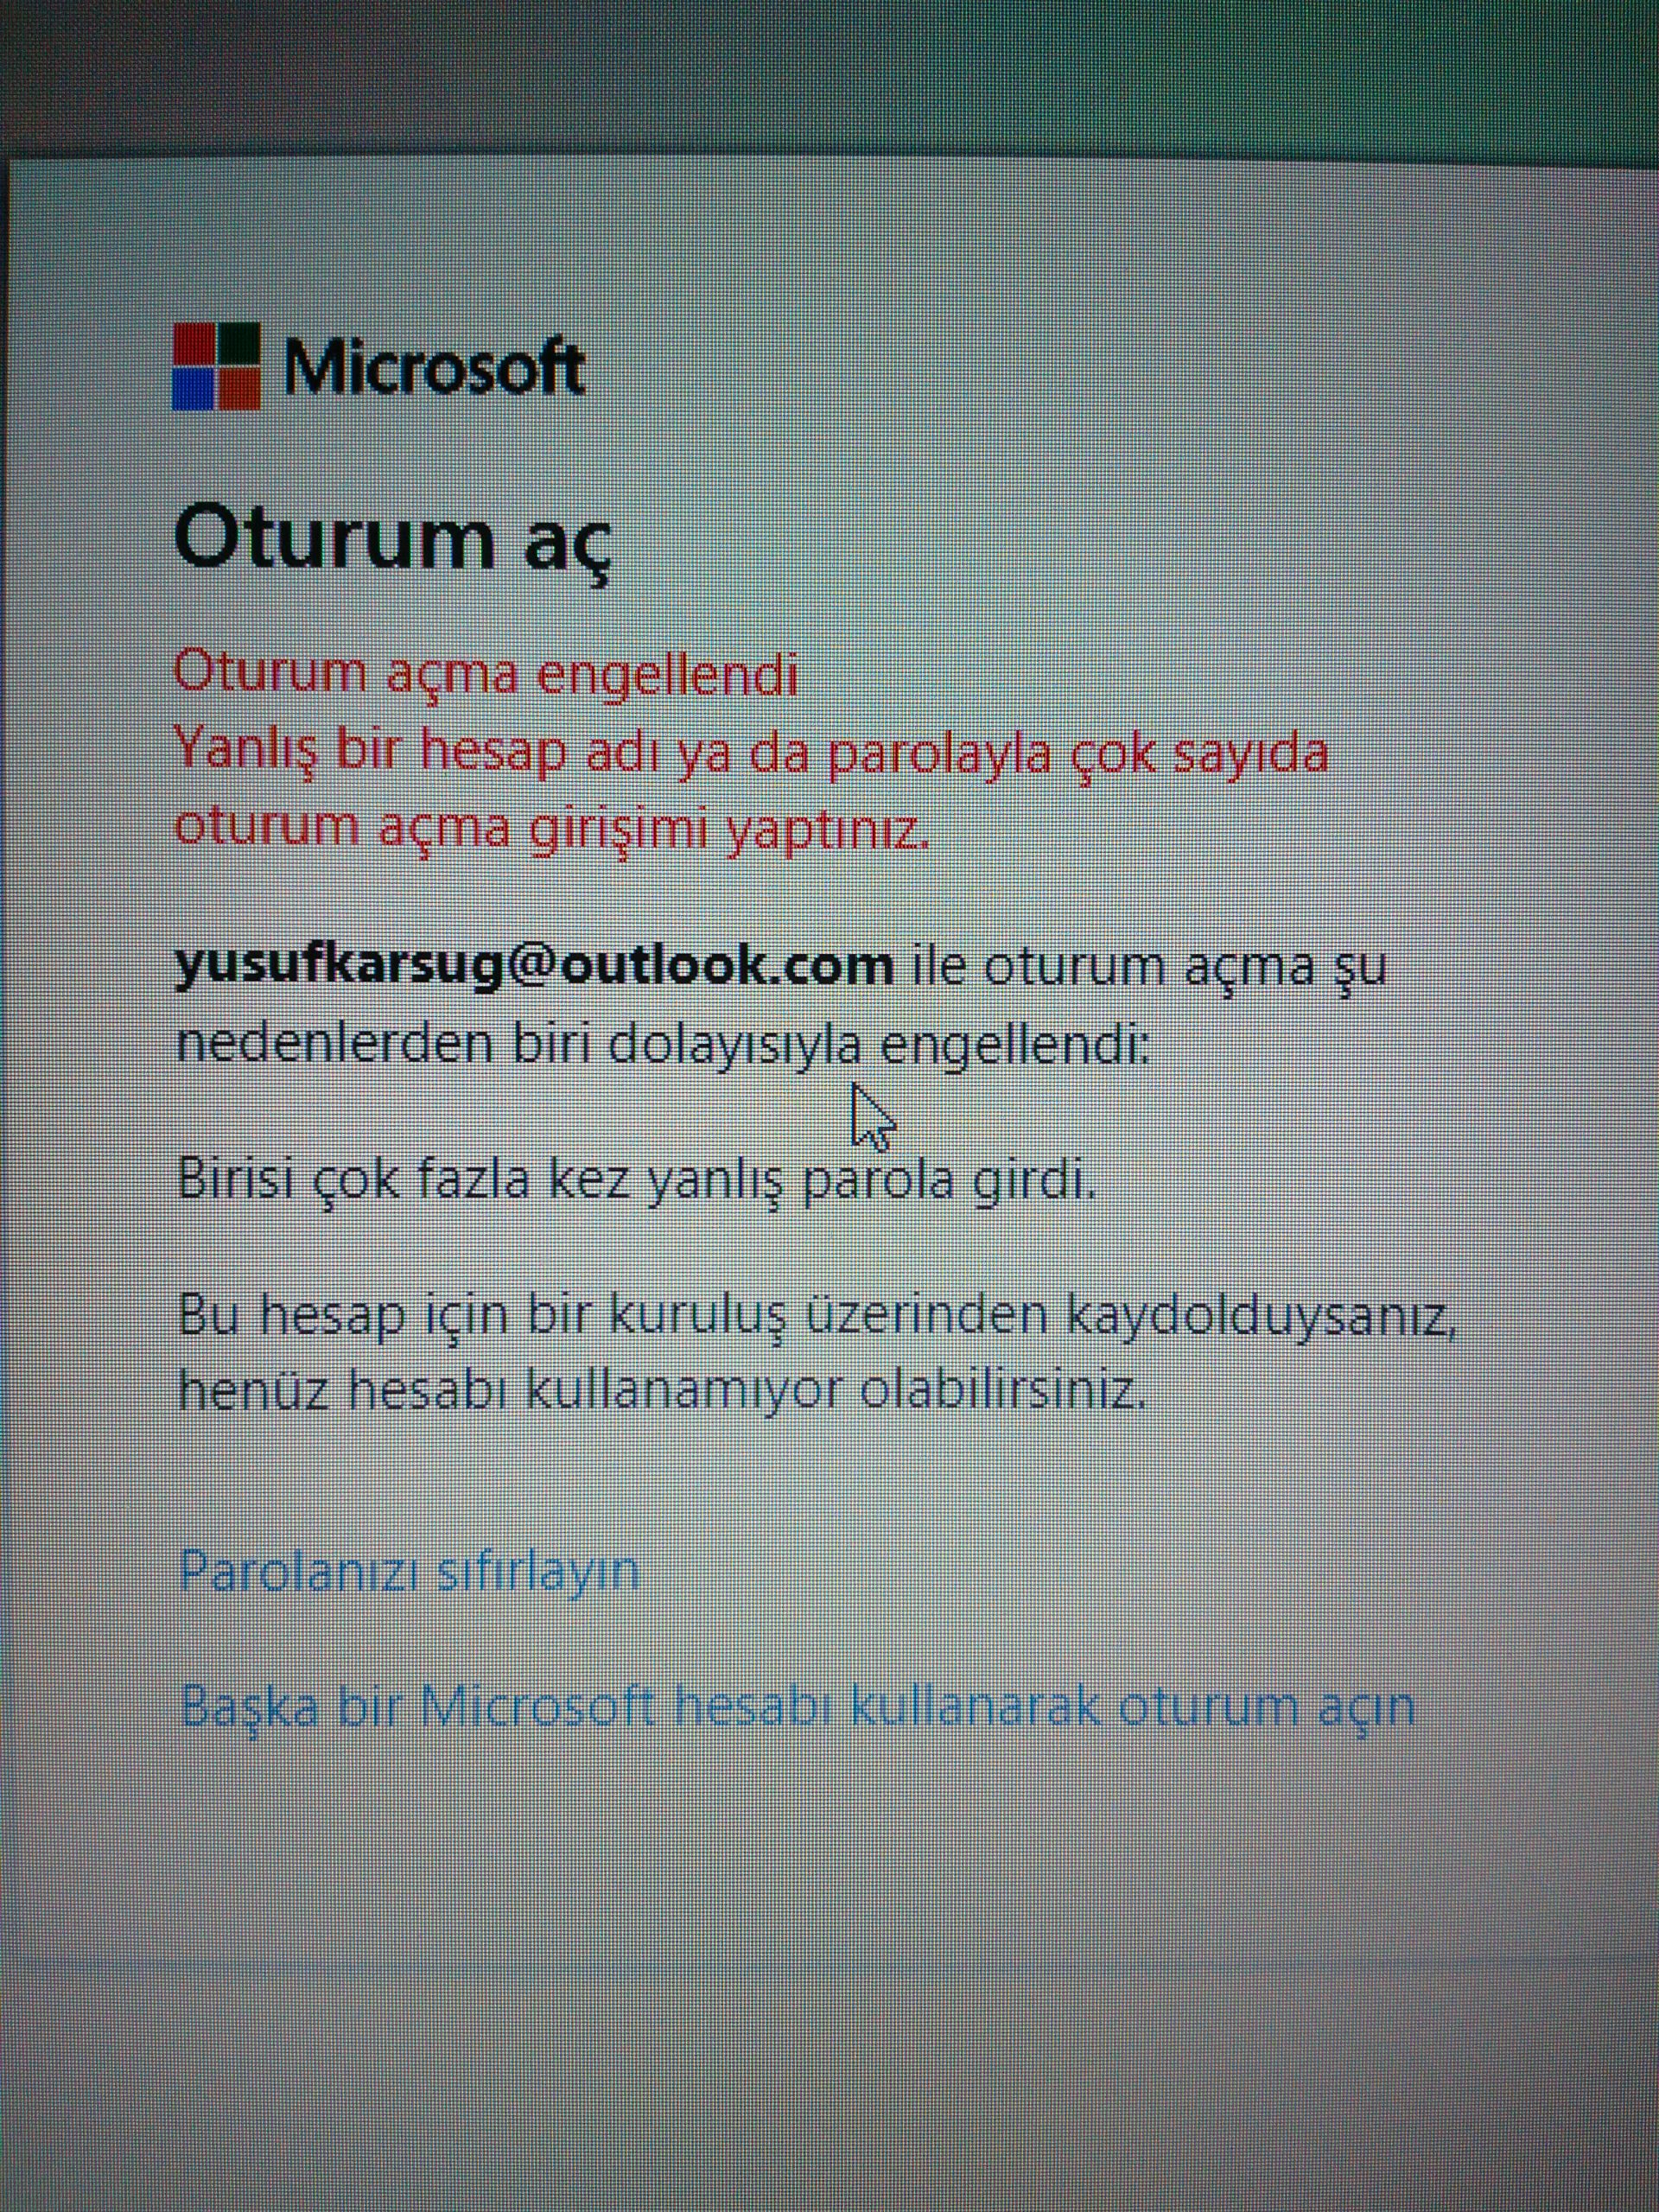 Outlook oturum açma engellendi!